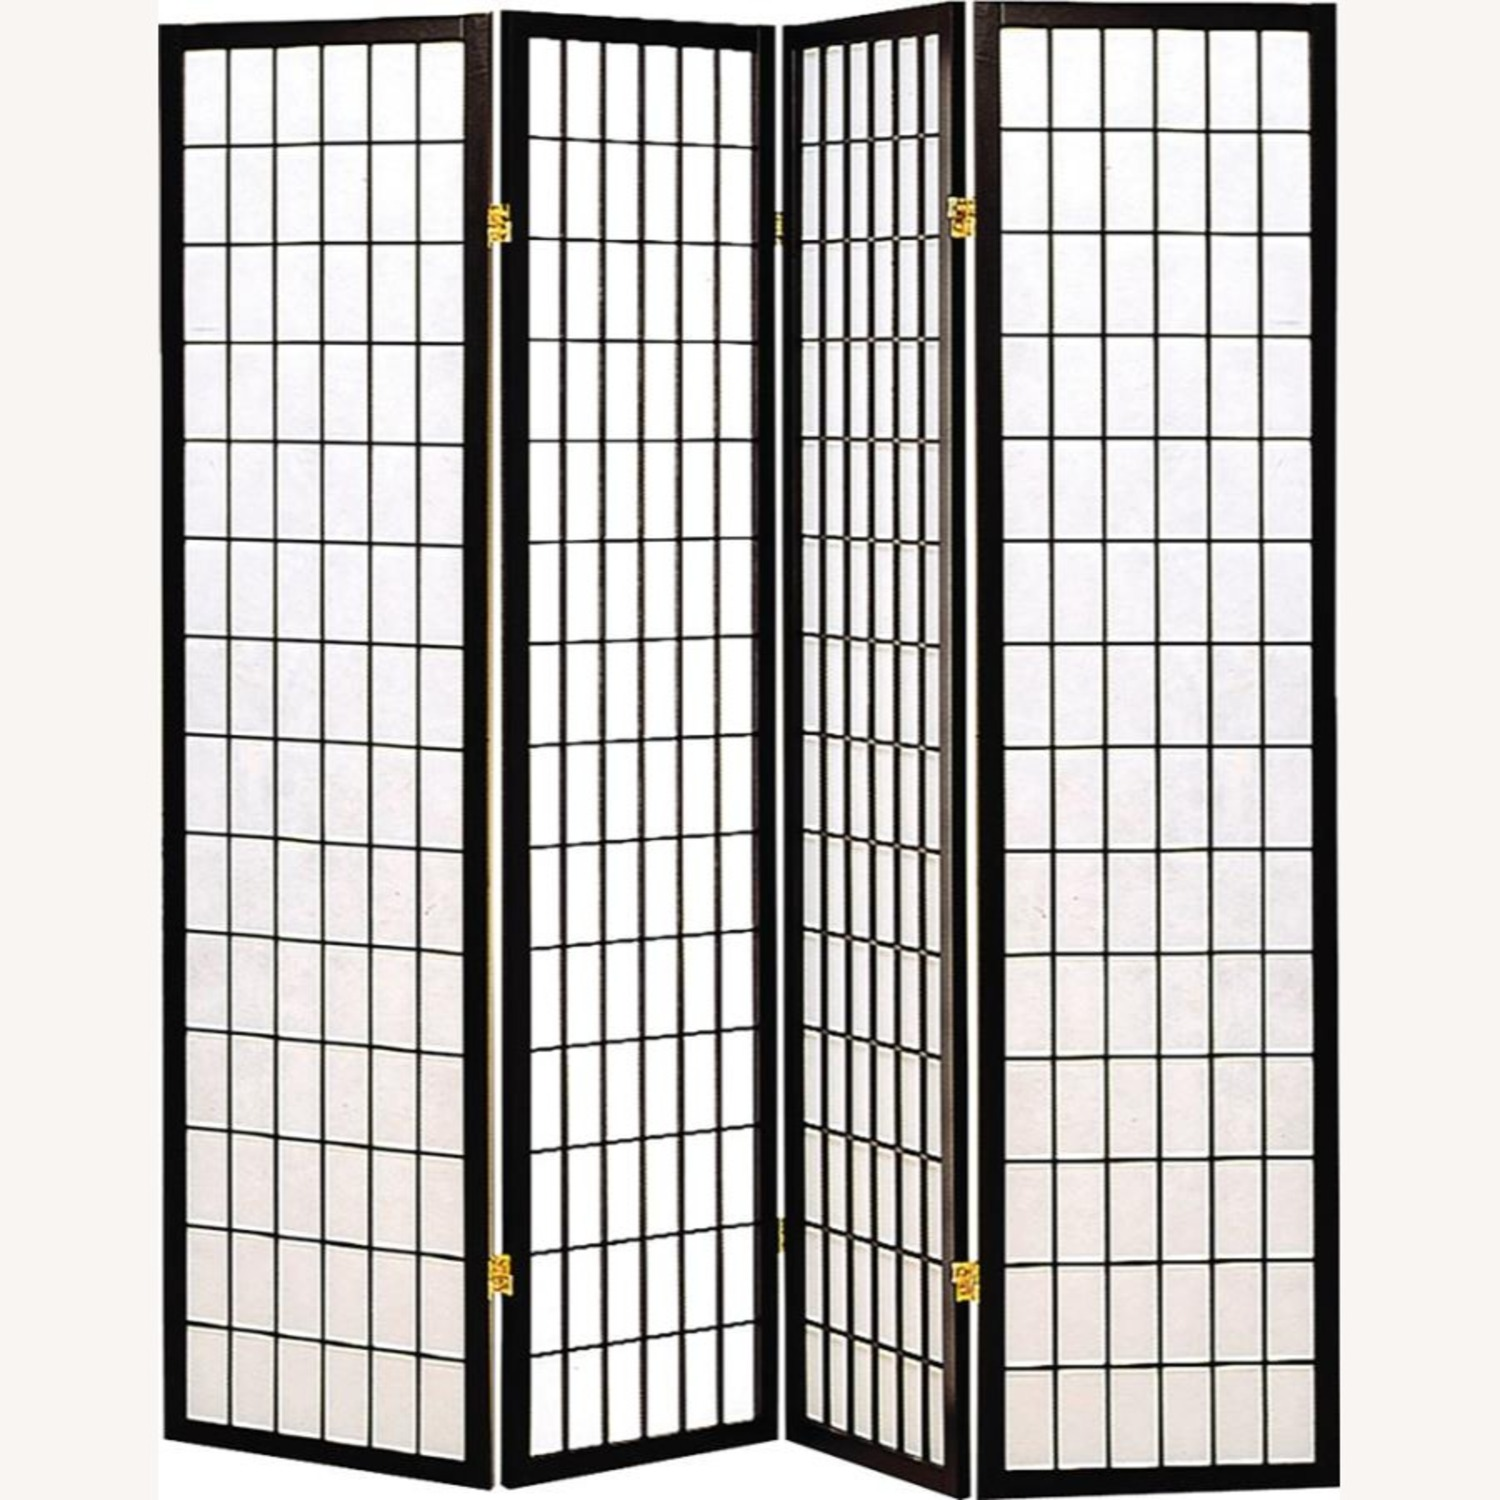 4-Panel Screen In White W/ Linear Grid Design - image-1